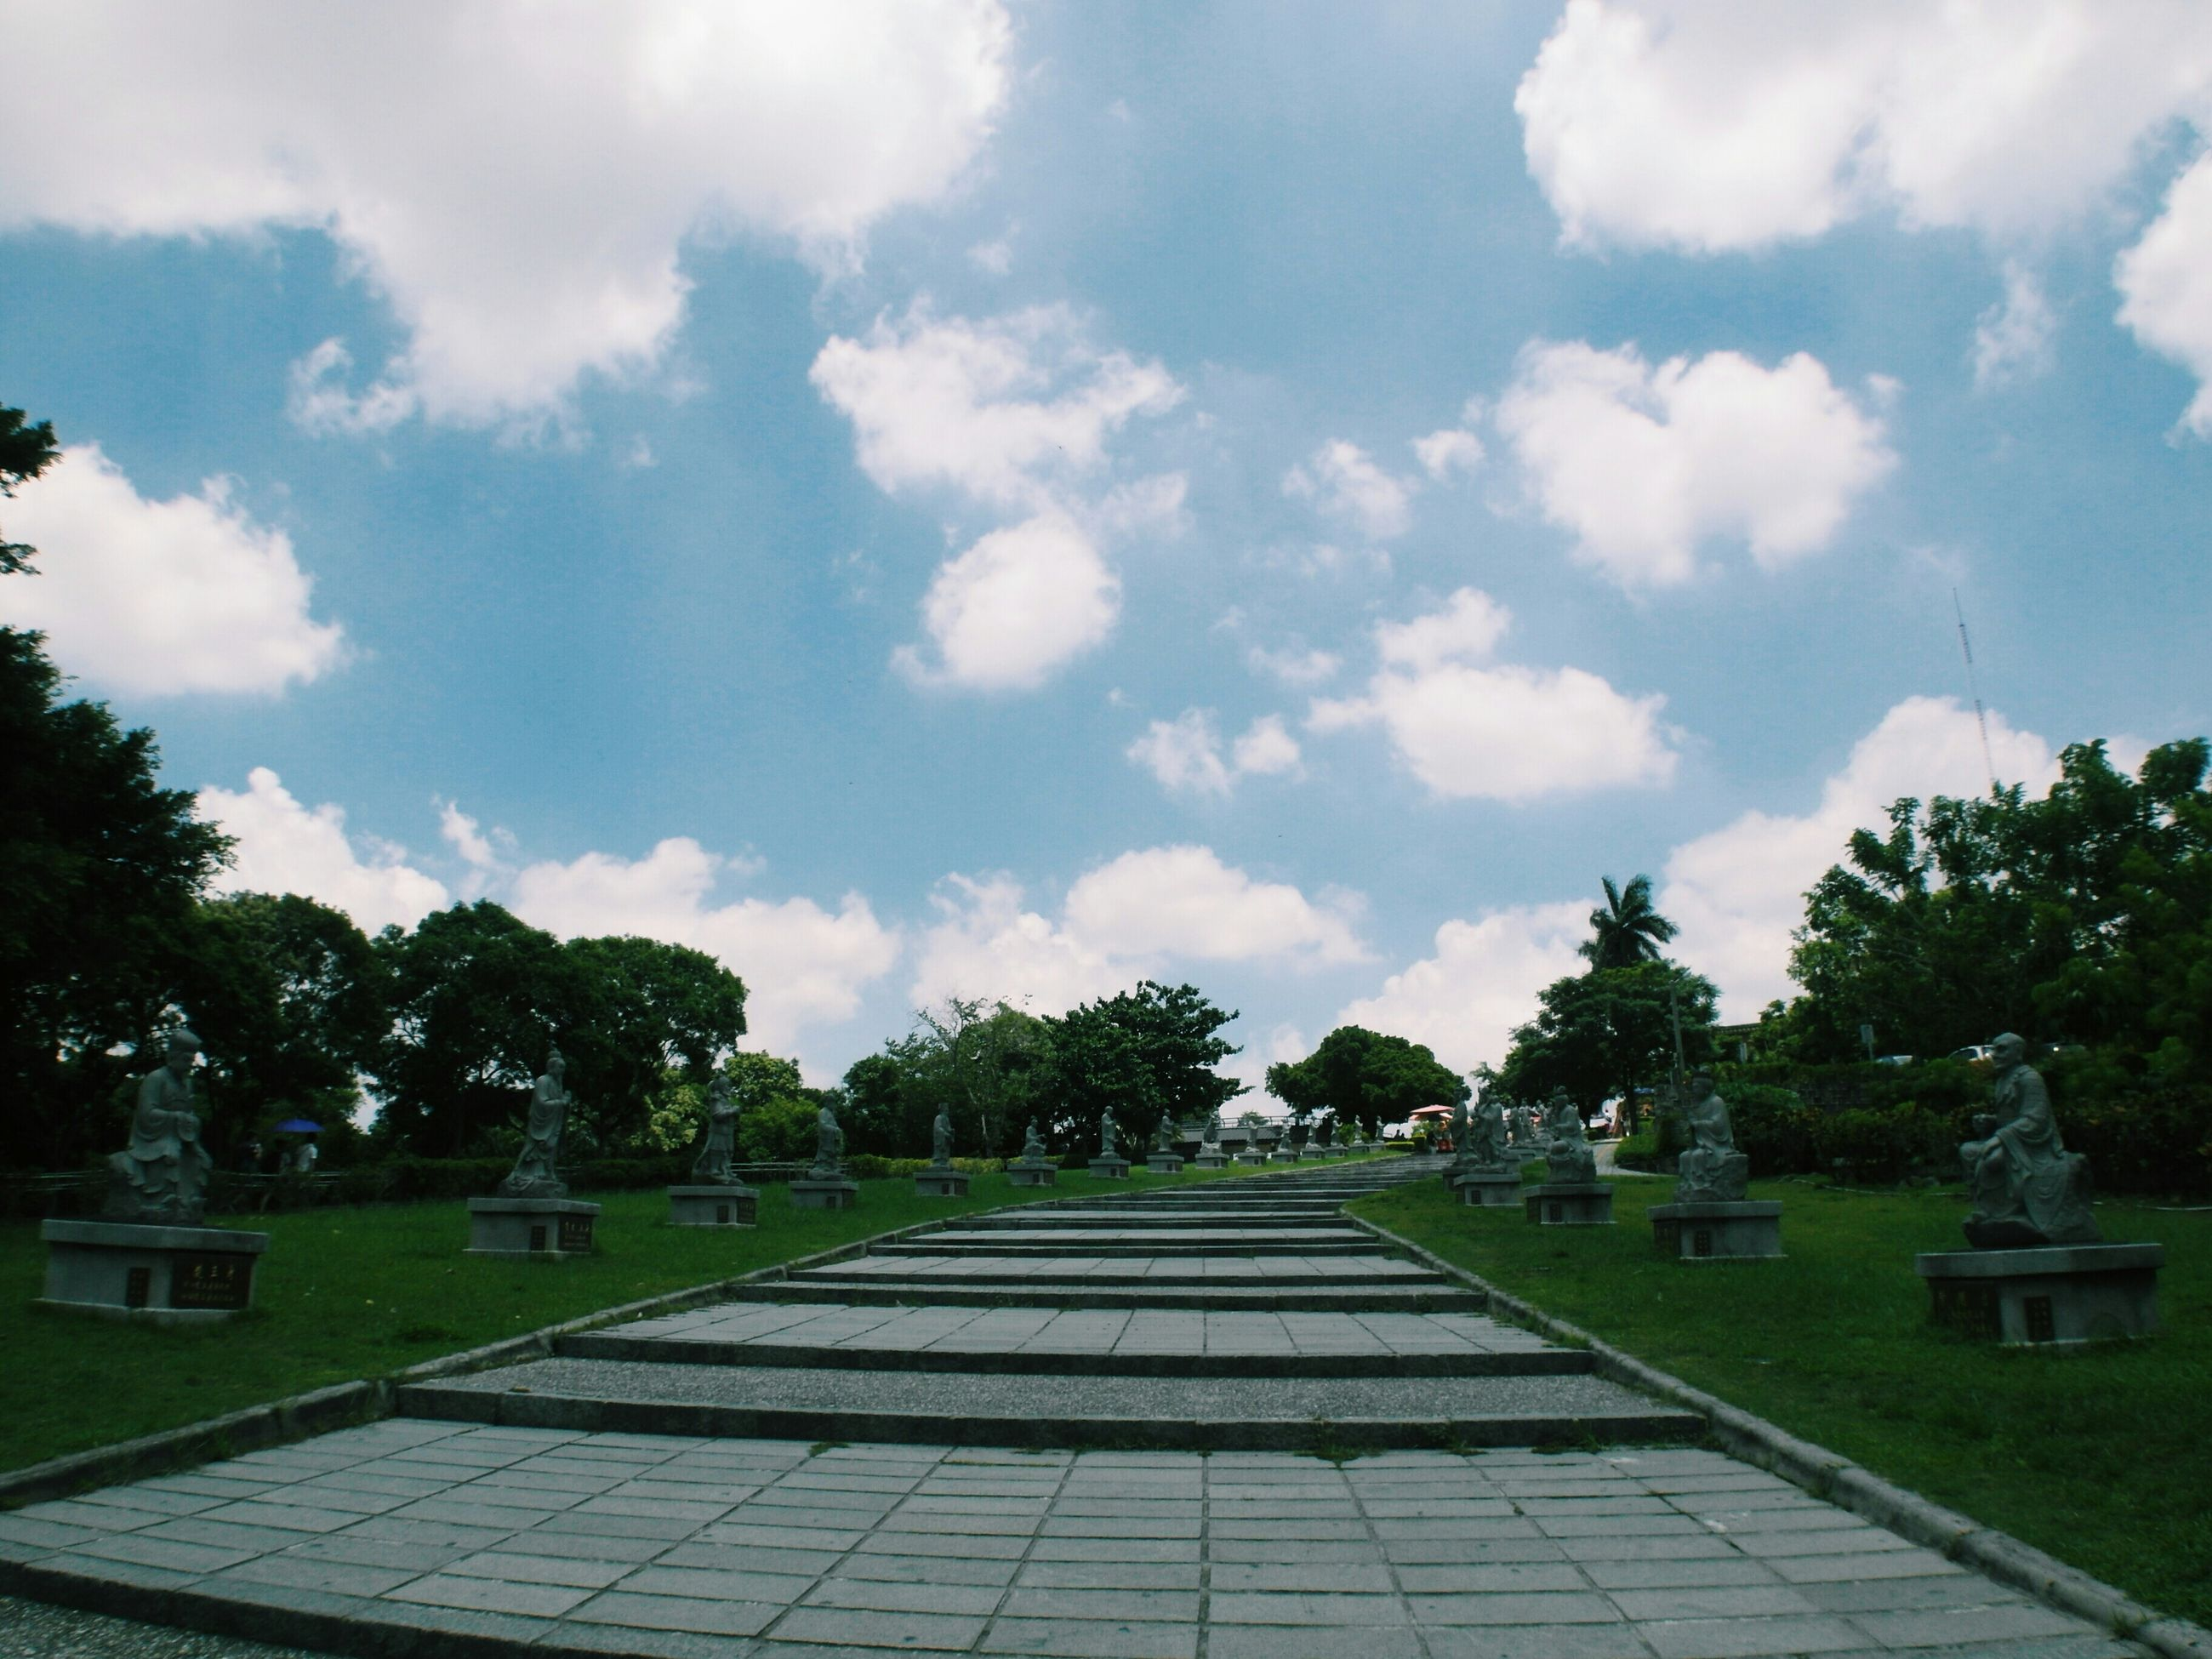 tree, sky, cloud - sky, cloud, built structure, architecture, building exterior, cloudy, growth, the way forward, park - man made space, grass, palm tree, green color, nature, sunlight, day, outdoors, no people, footpath